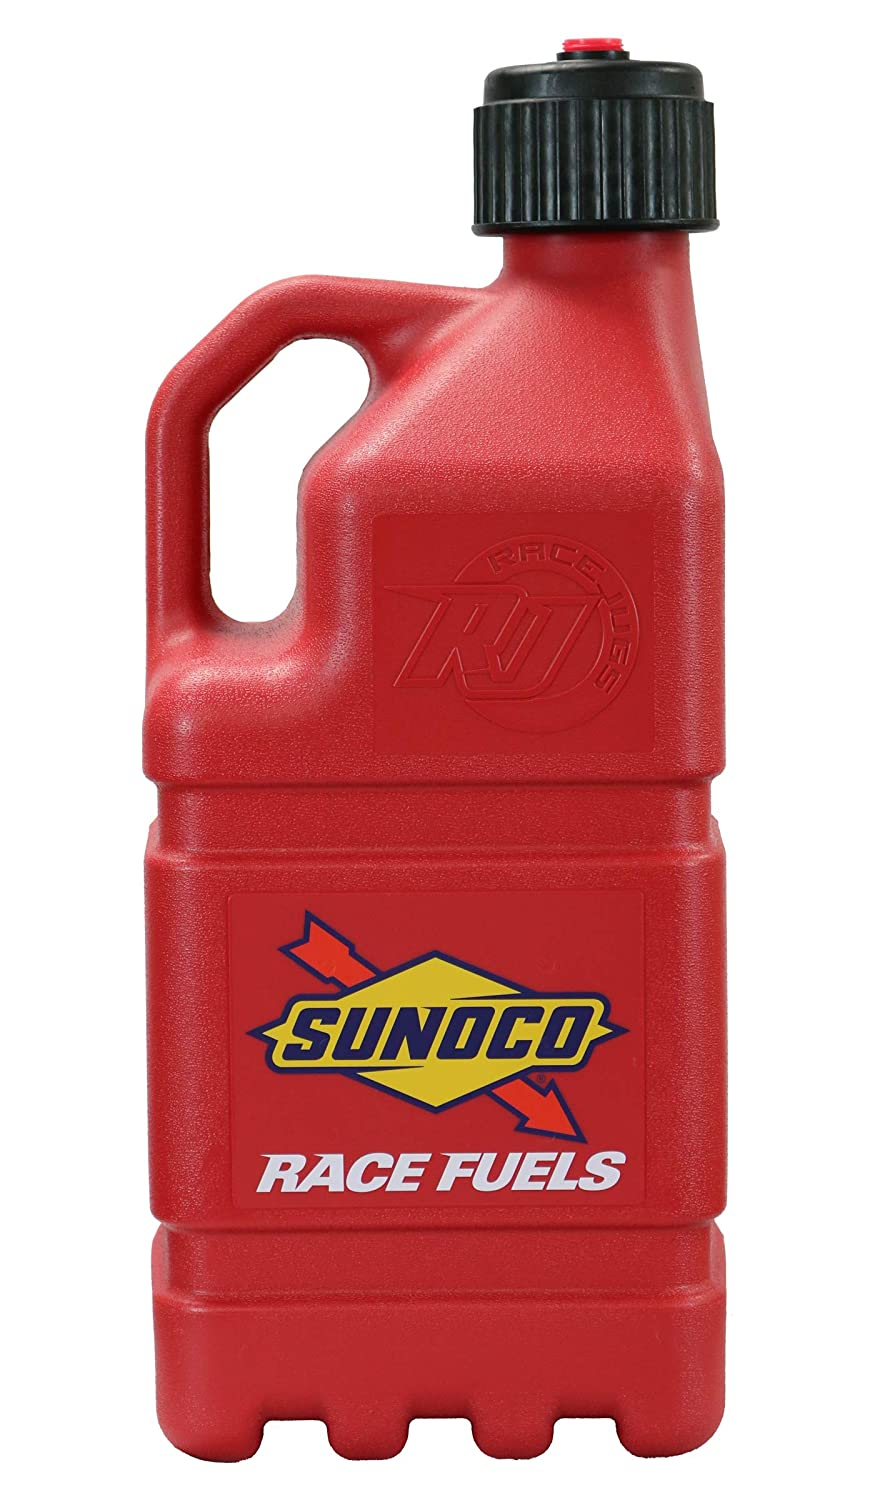 Sunoco Race Jugs 5 Gallon Racing Utility - Red - Made in The USA R7200RD